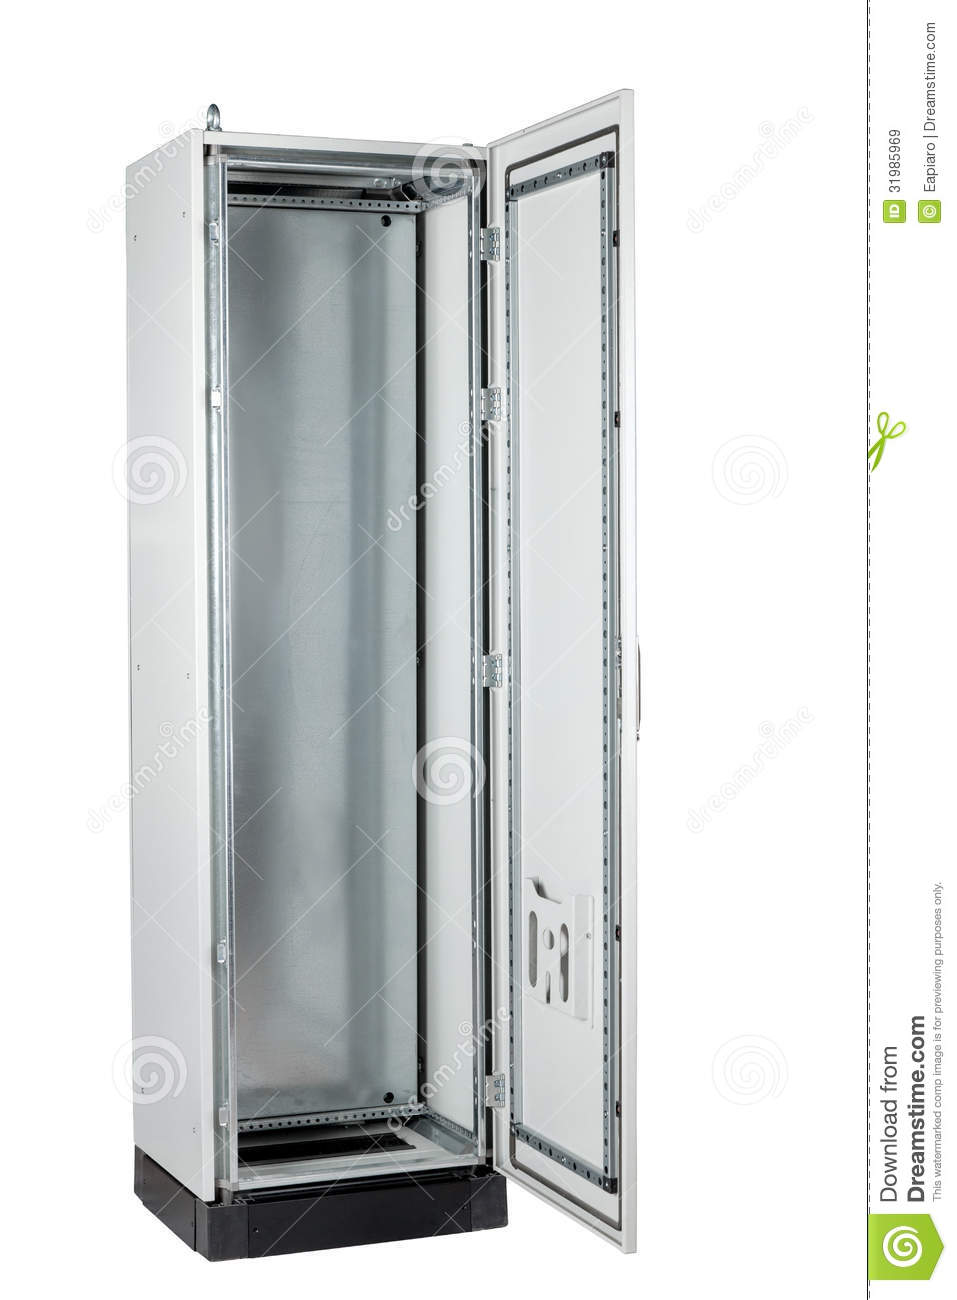 Computer Server Rack Cabinet Stock Image - Image of empty